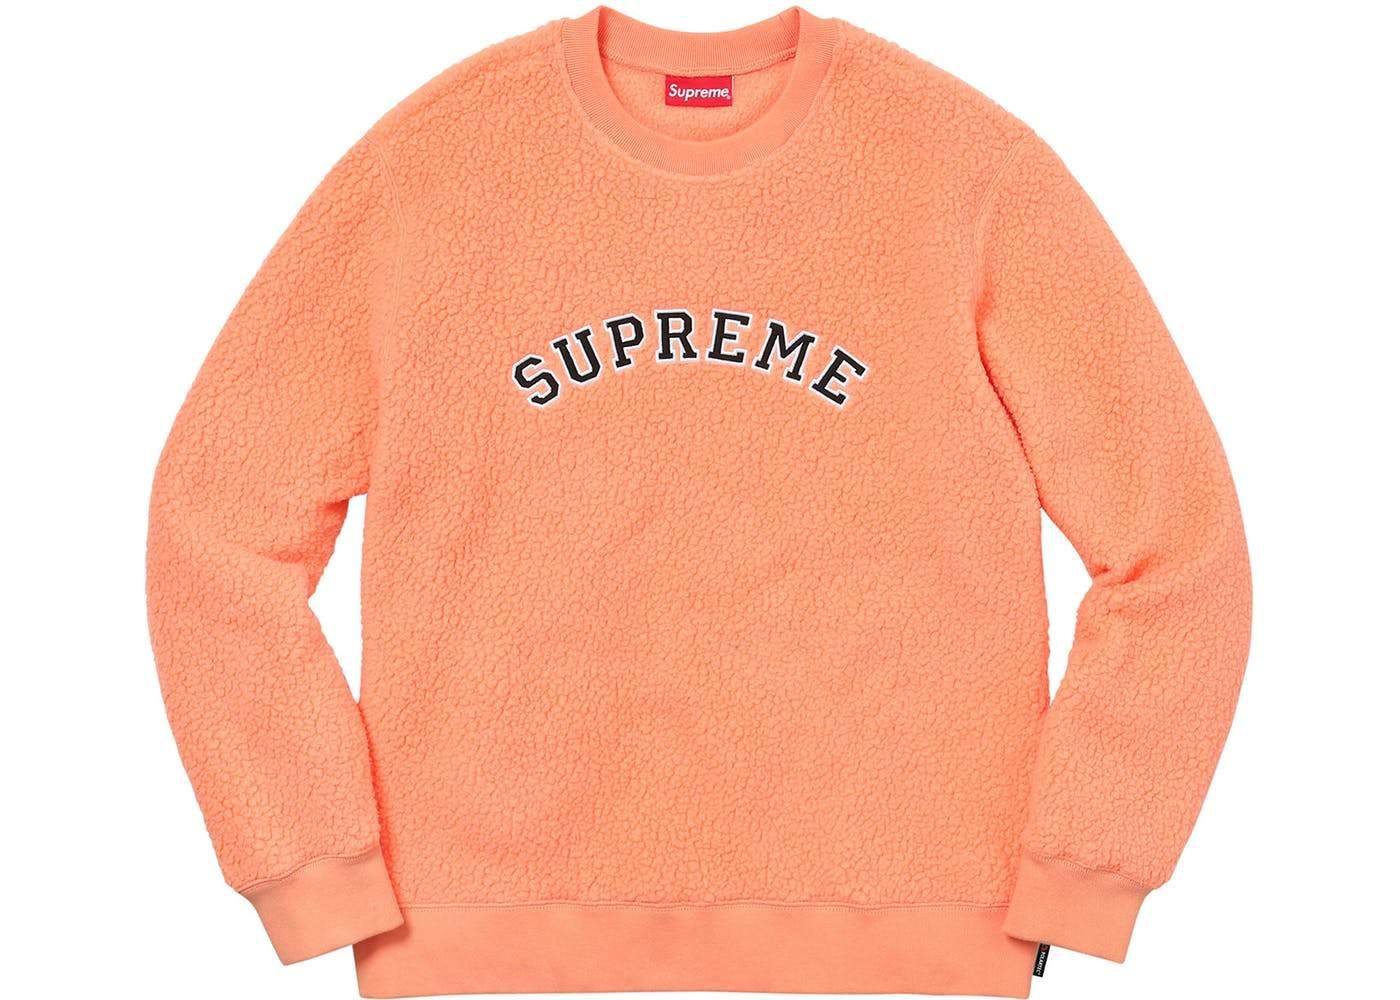 Supreme Sweater Sweater 268 At Copvsdrop Wheretoget